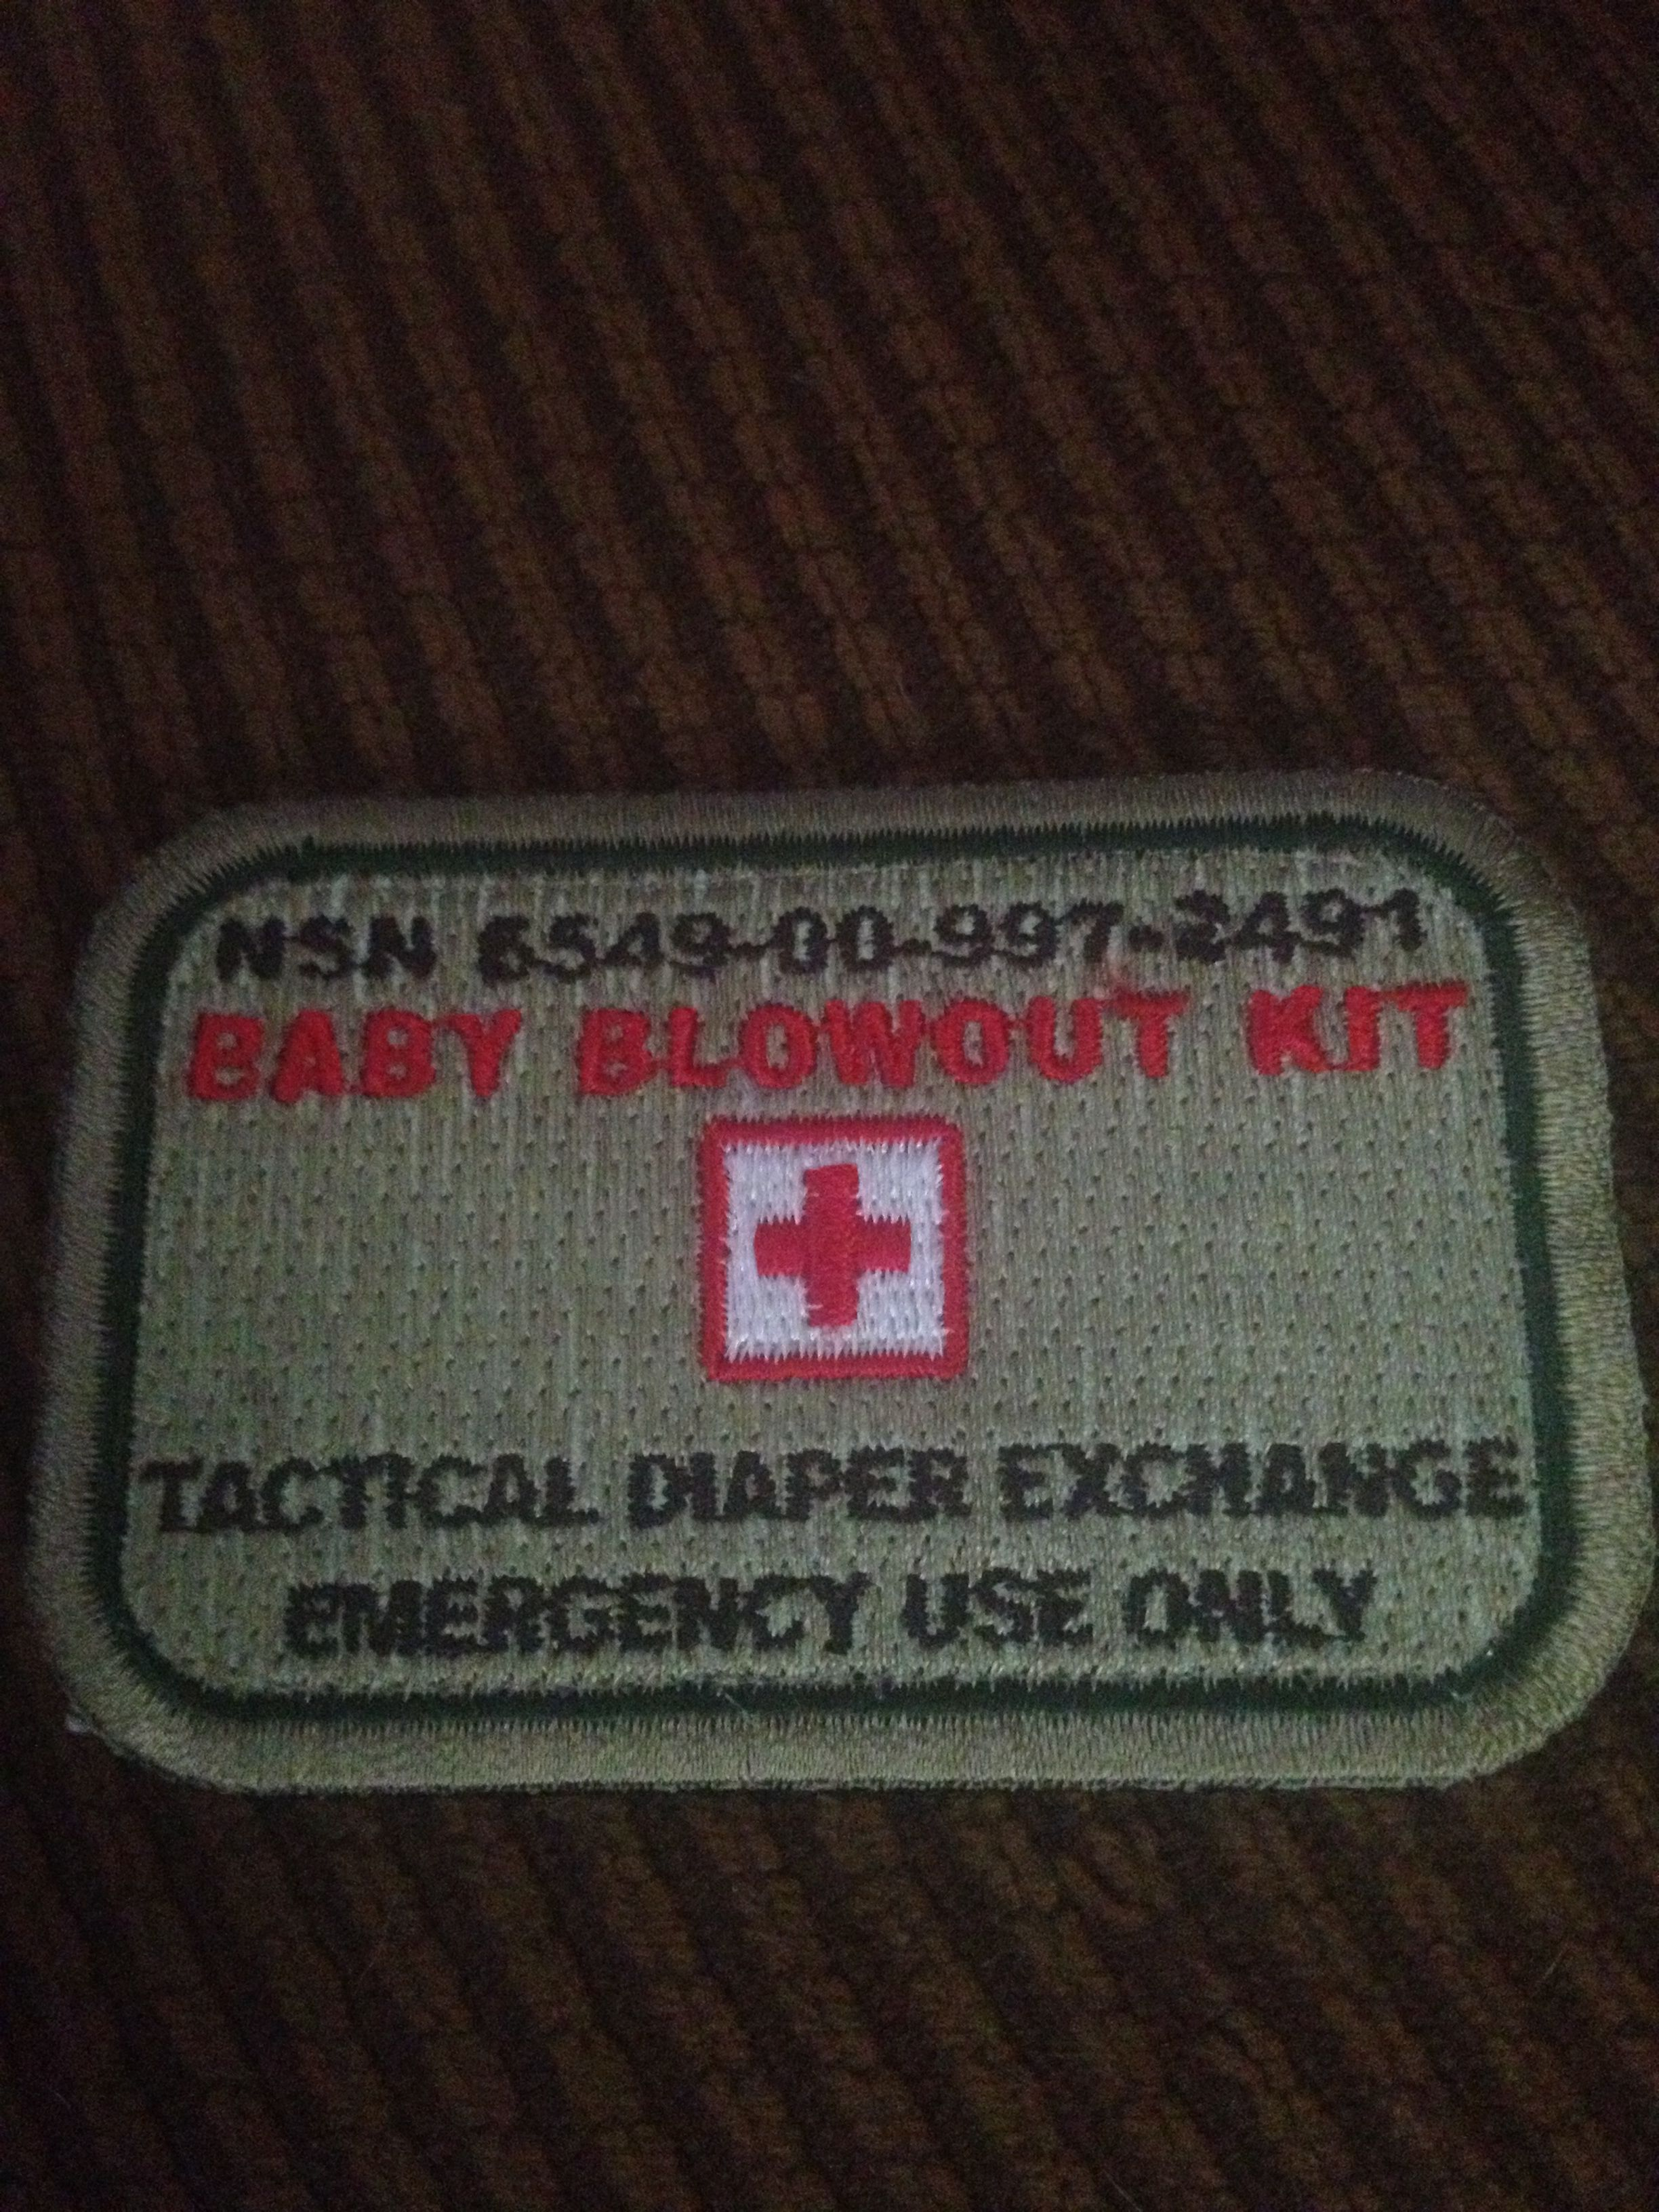 New patch for my tactical diaper bag!  dbb31e87d43